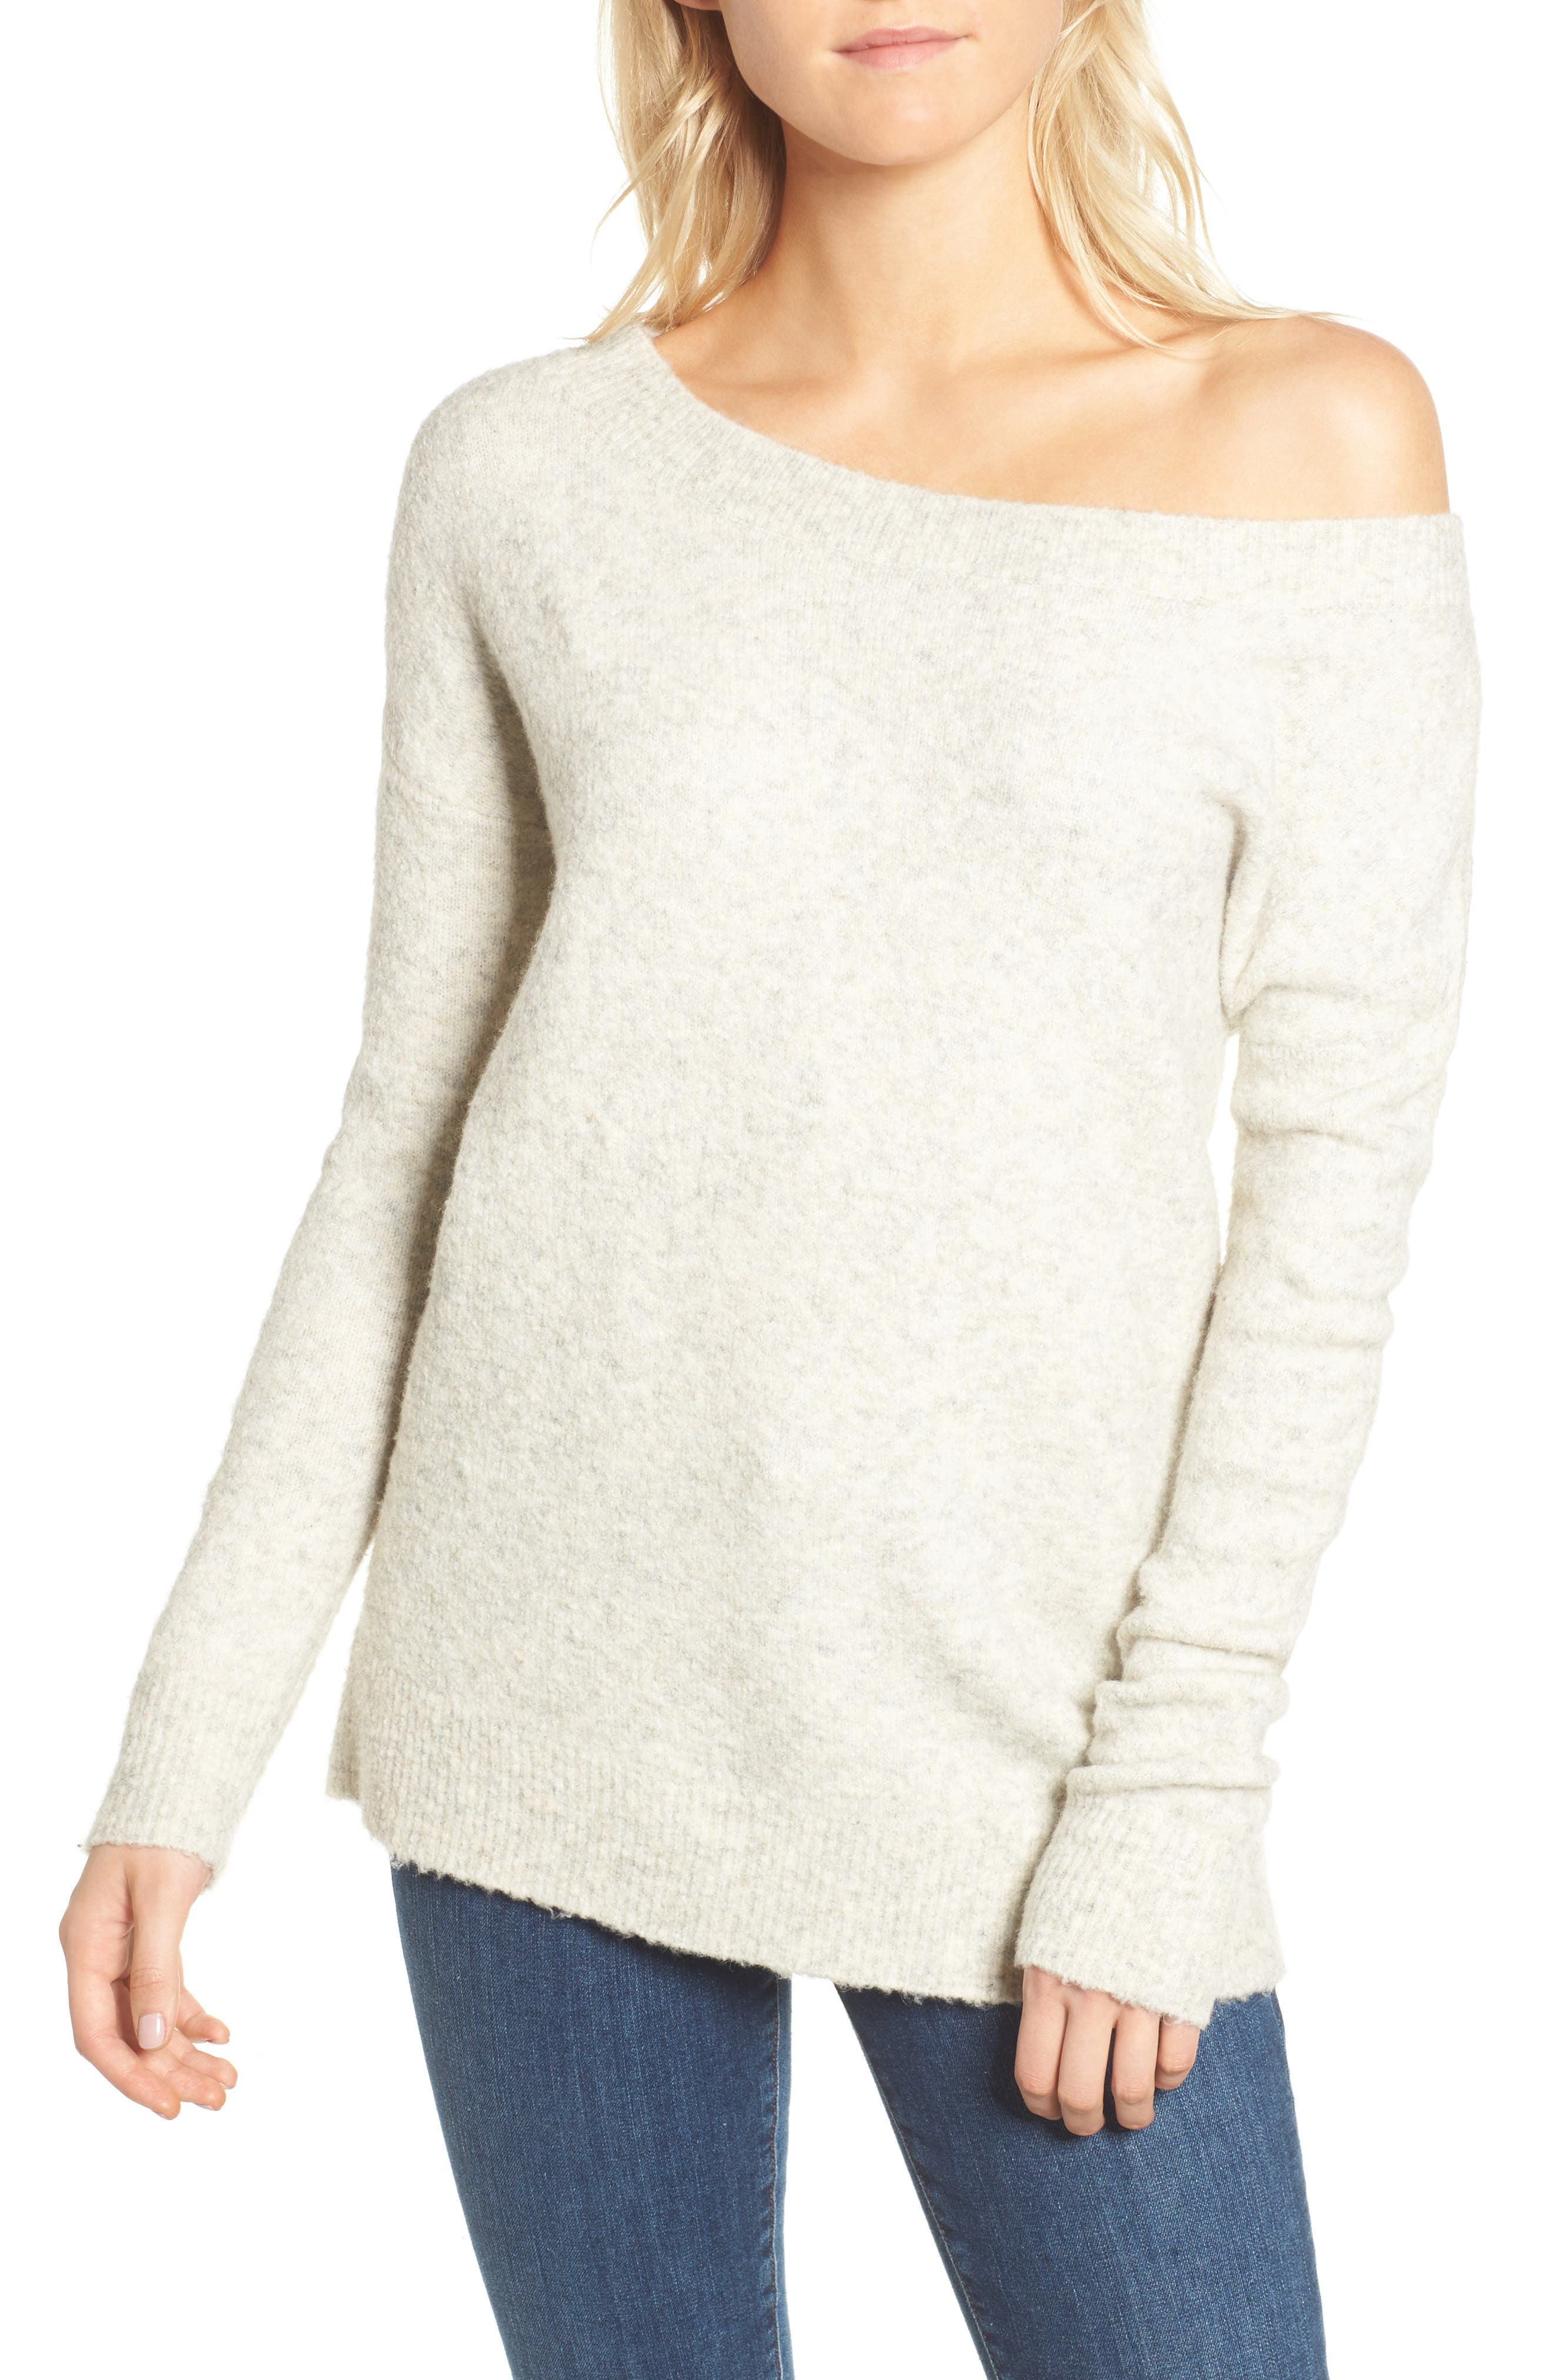 Urban Flossy One-Shoulder Sweater,                         Main,                         color, Light Oatmeal